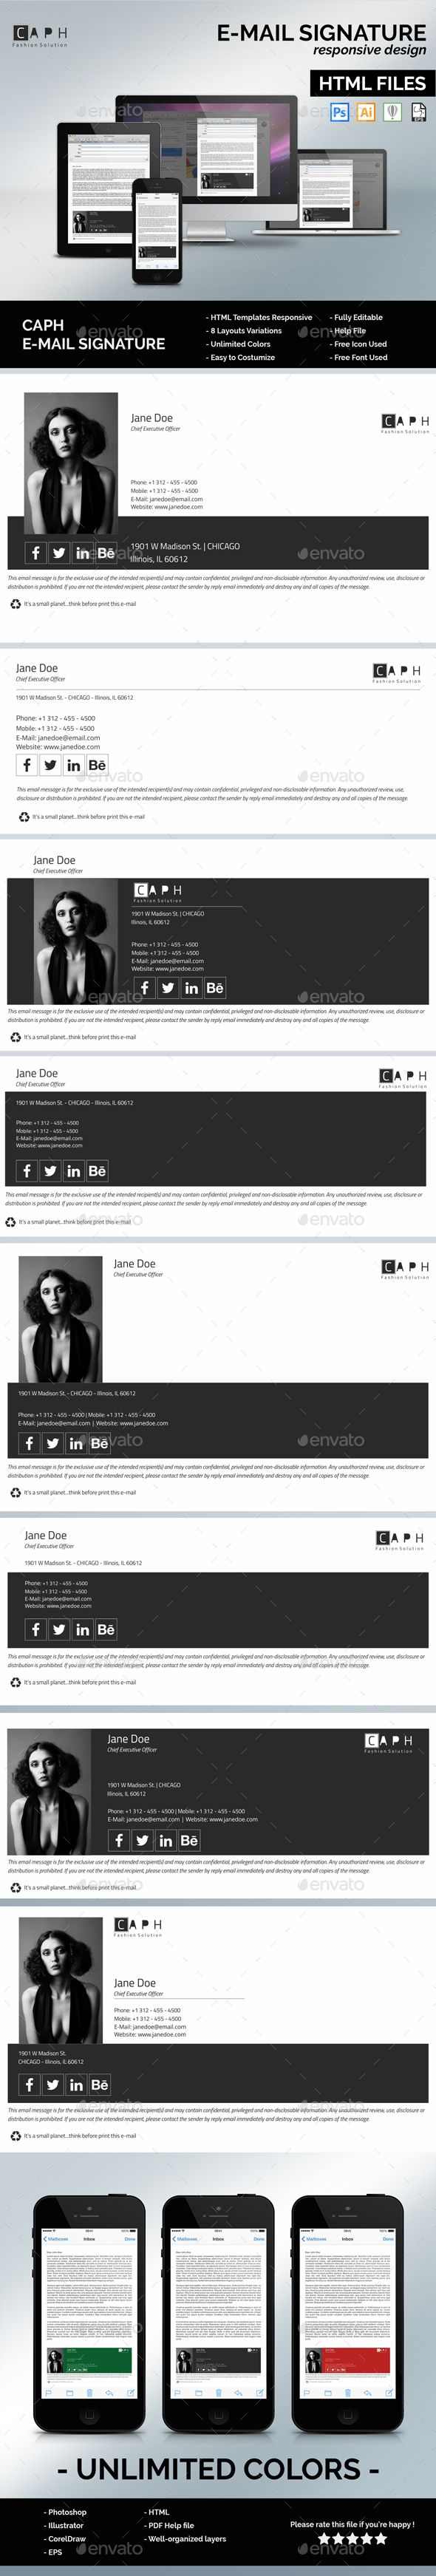 29 best Email Signature Templates images on Pinterest | Design web ...